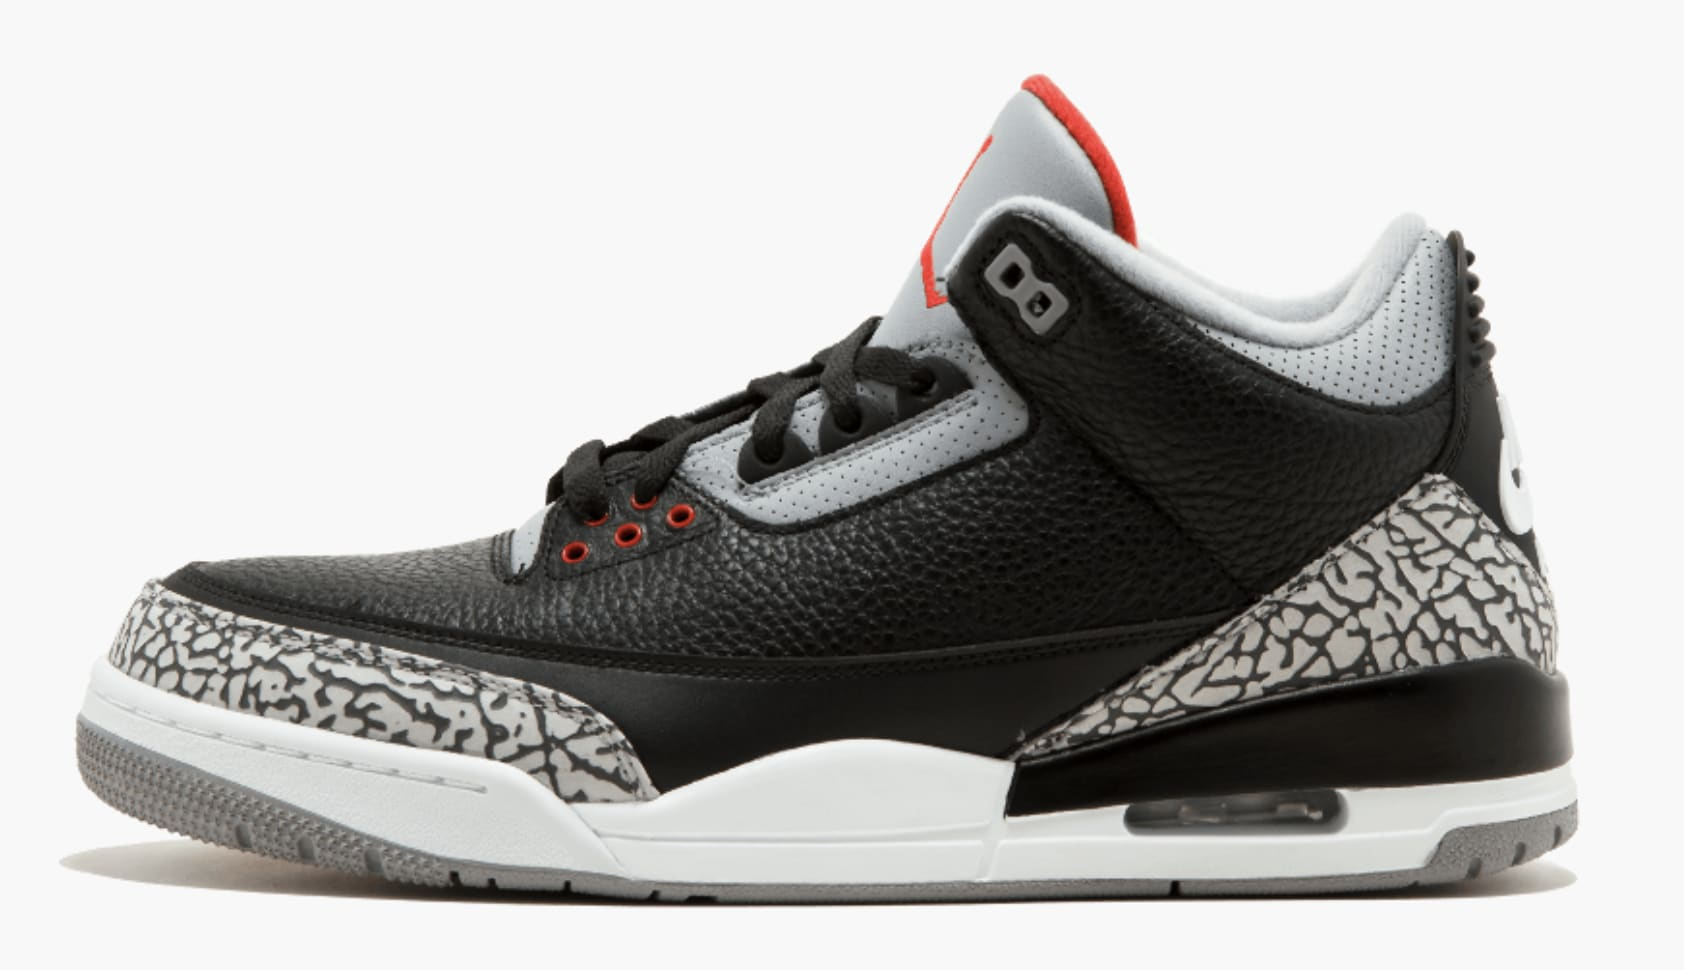 882bb97f5066 picture of lasted styles nike air jordan 3 5 retro grey color sku